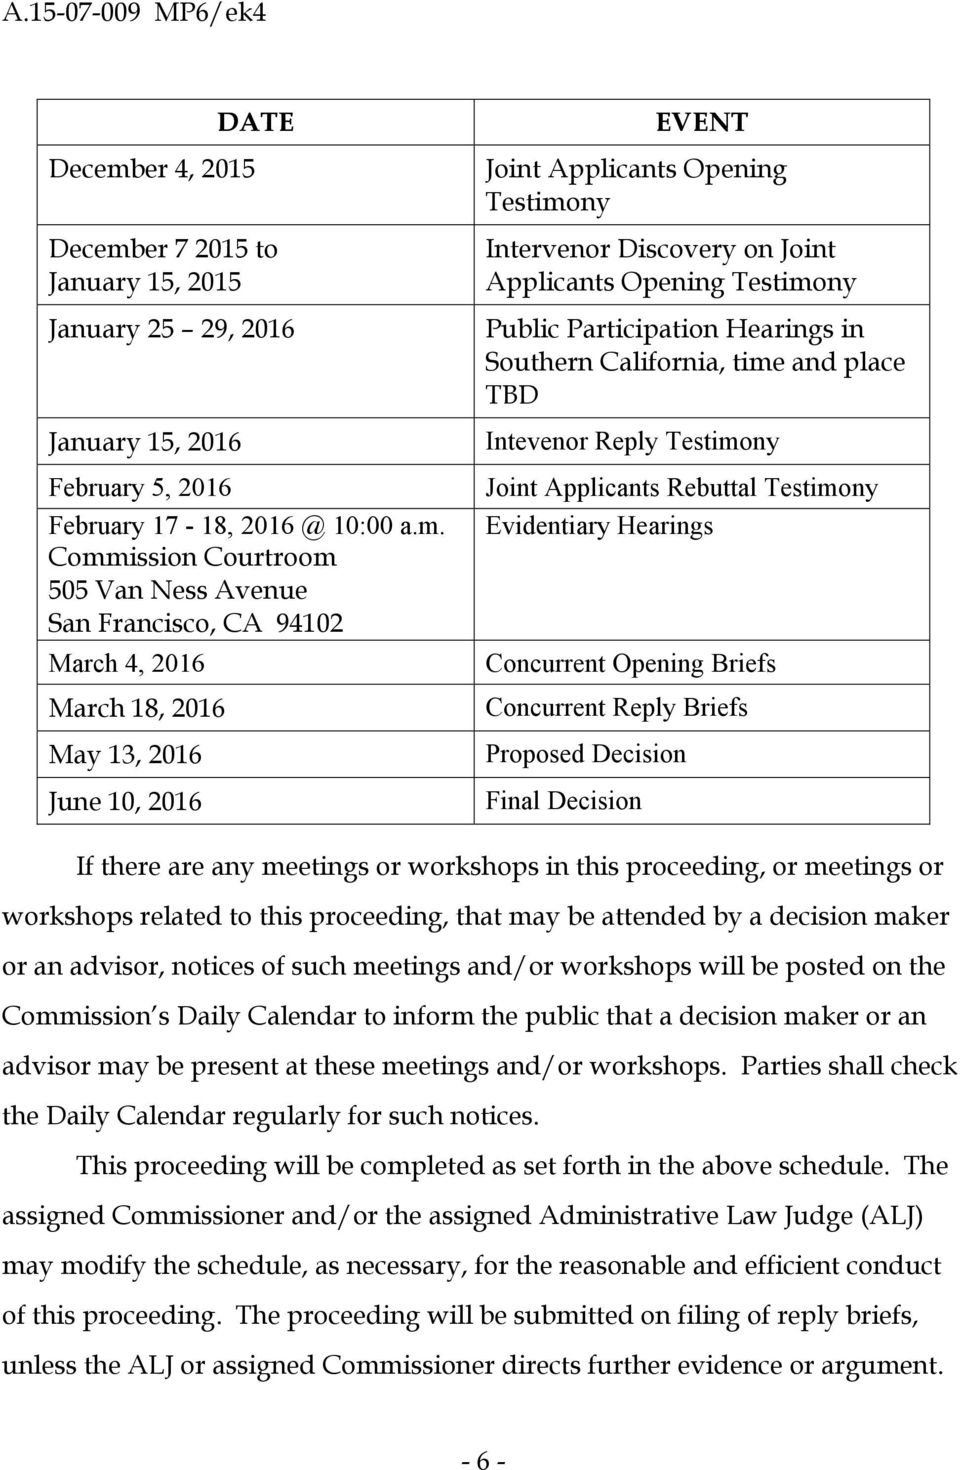 Commission Courtroom 505 Van Ness Avenue San Francisco, CA 94102 March 4, 2016 March 18, 2016 May 13, 2016 June 10, 2016 EVENT Joint Applicants Opening Testimony Intervenor Discovery on Joint